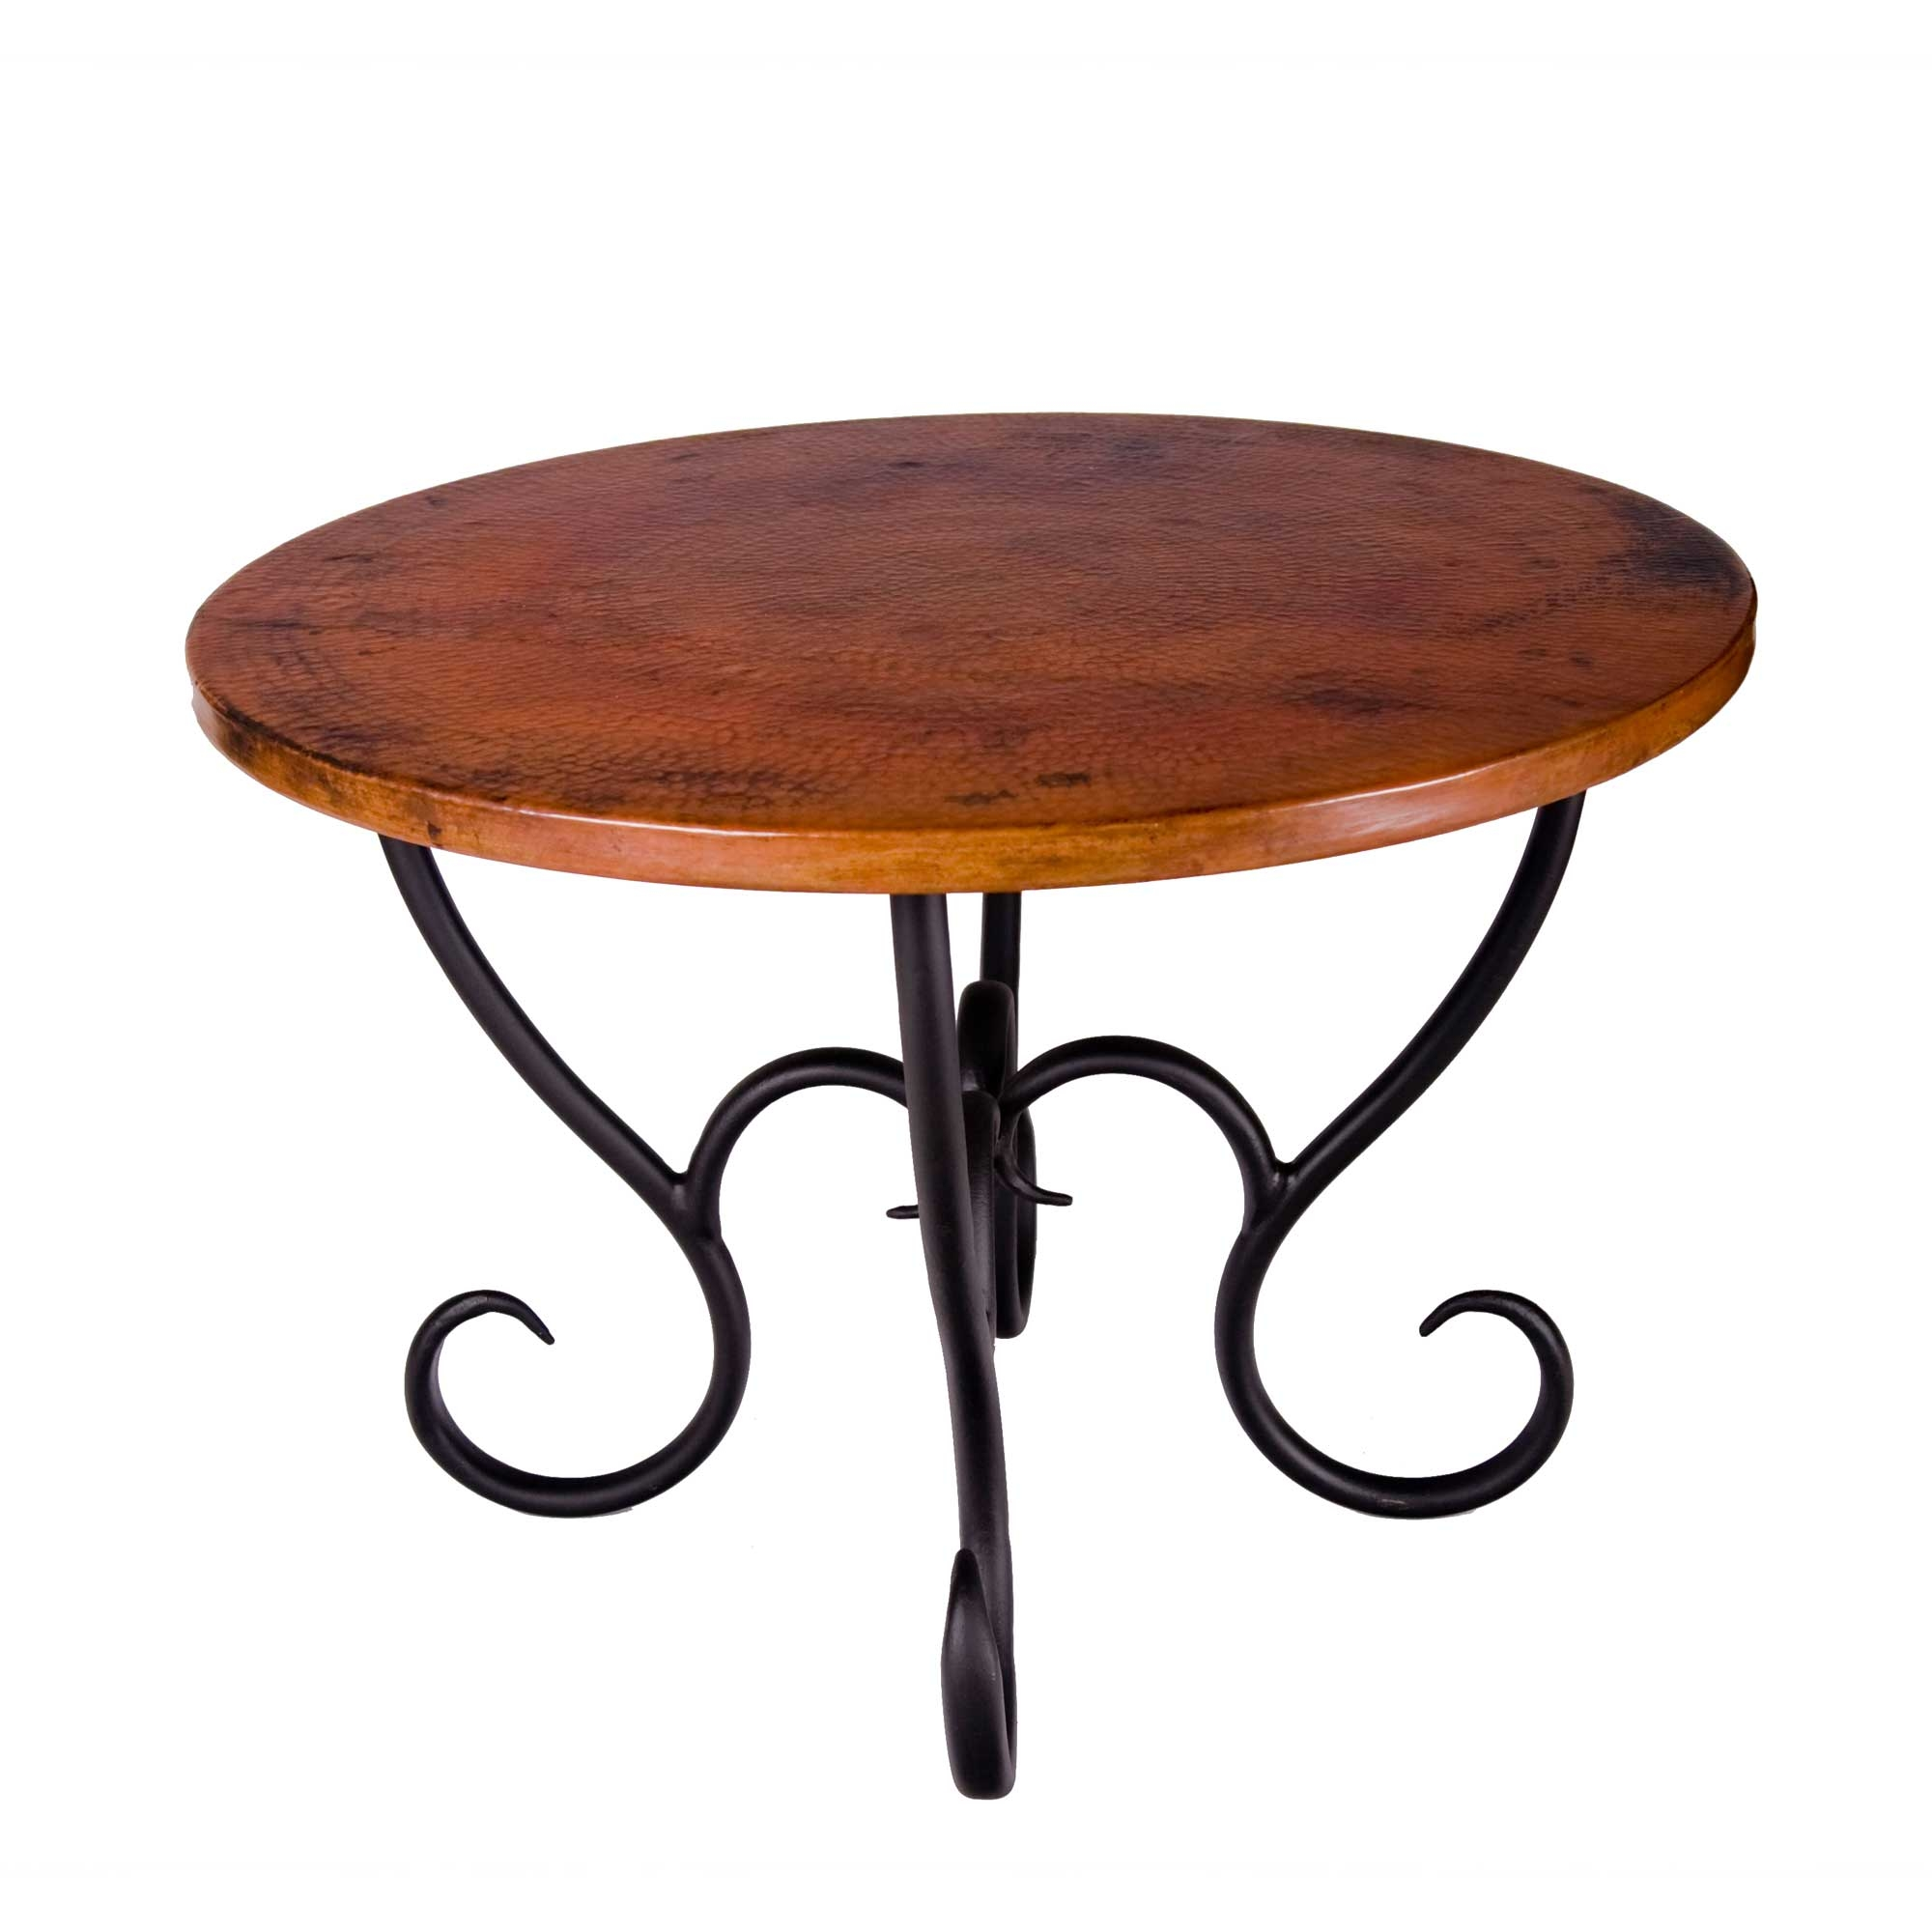 Wrought Iron Milan Dining Table Round By Mathews Co